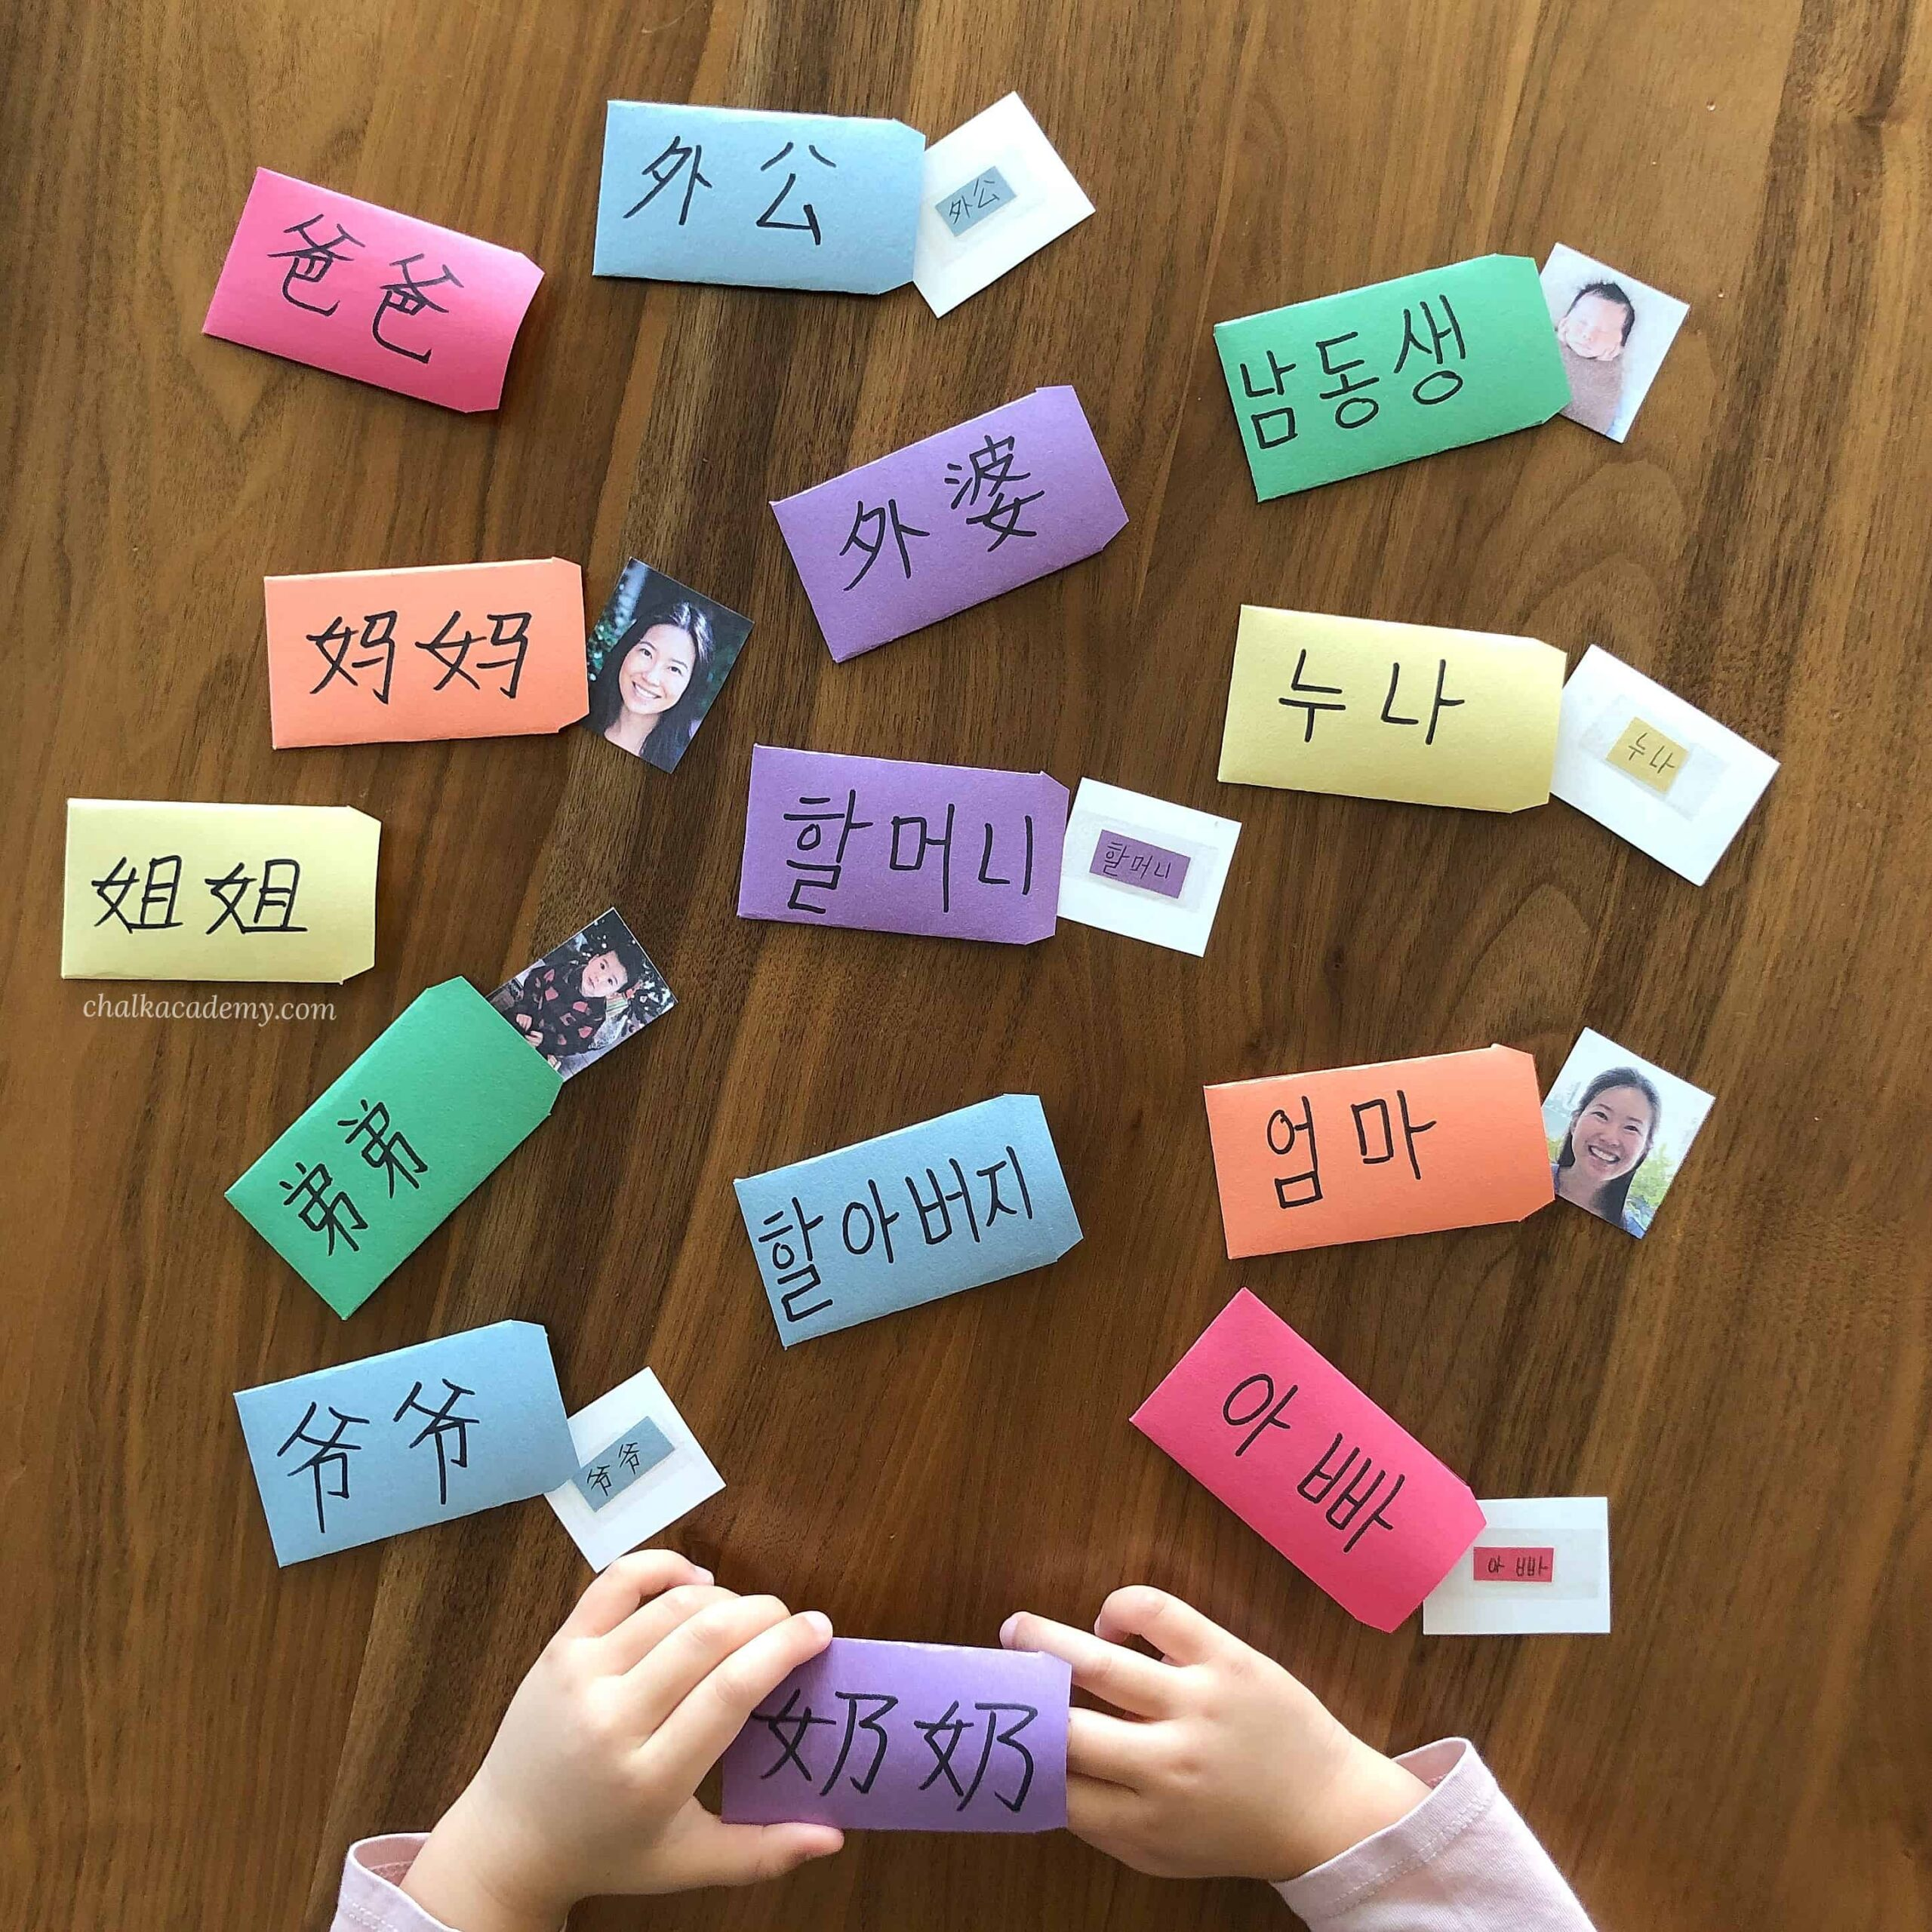 Family Members Learning Activity for Kids: Sight Word Envelope Surprise!